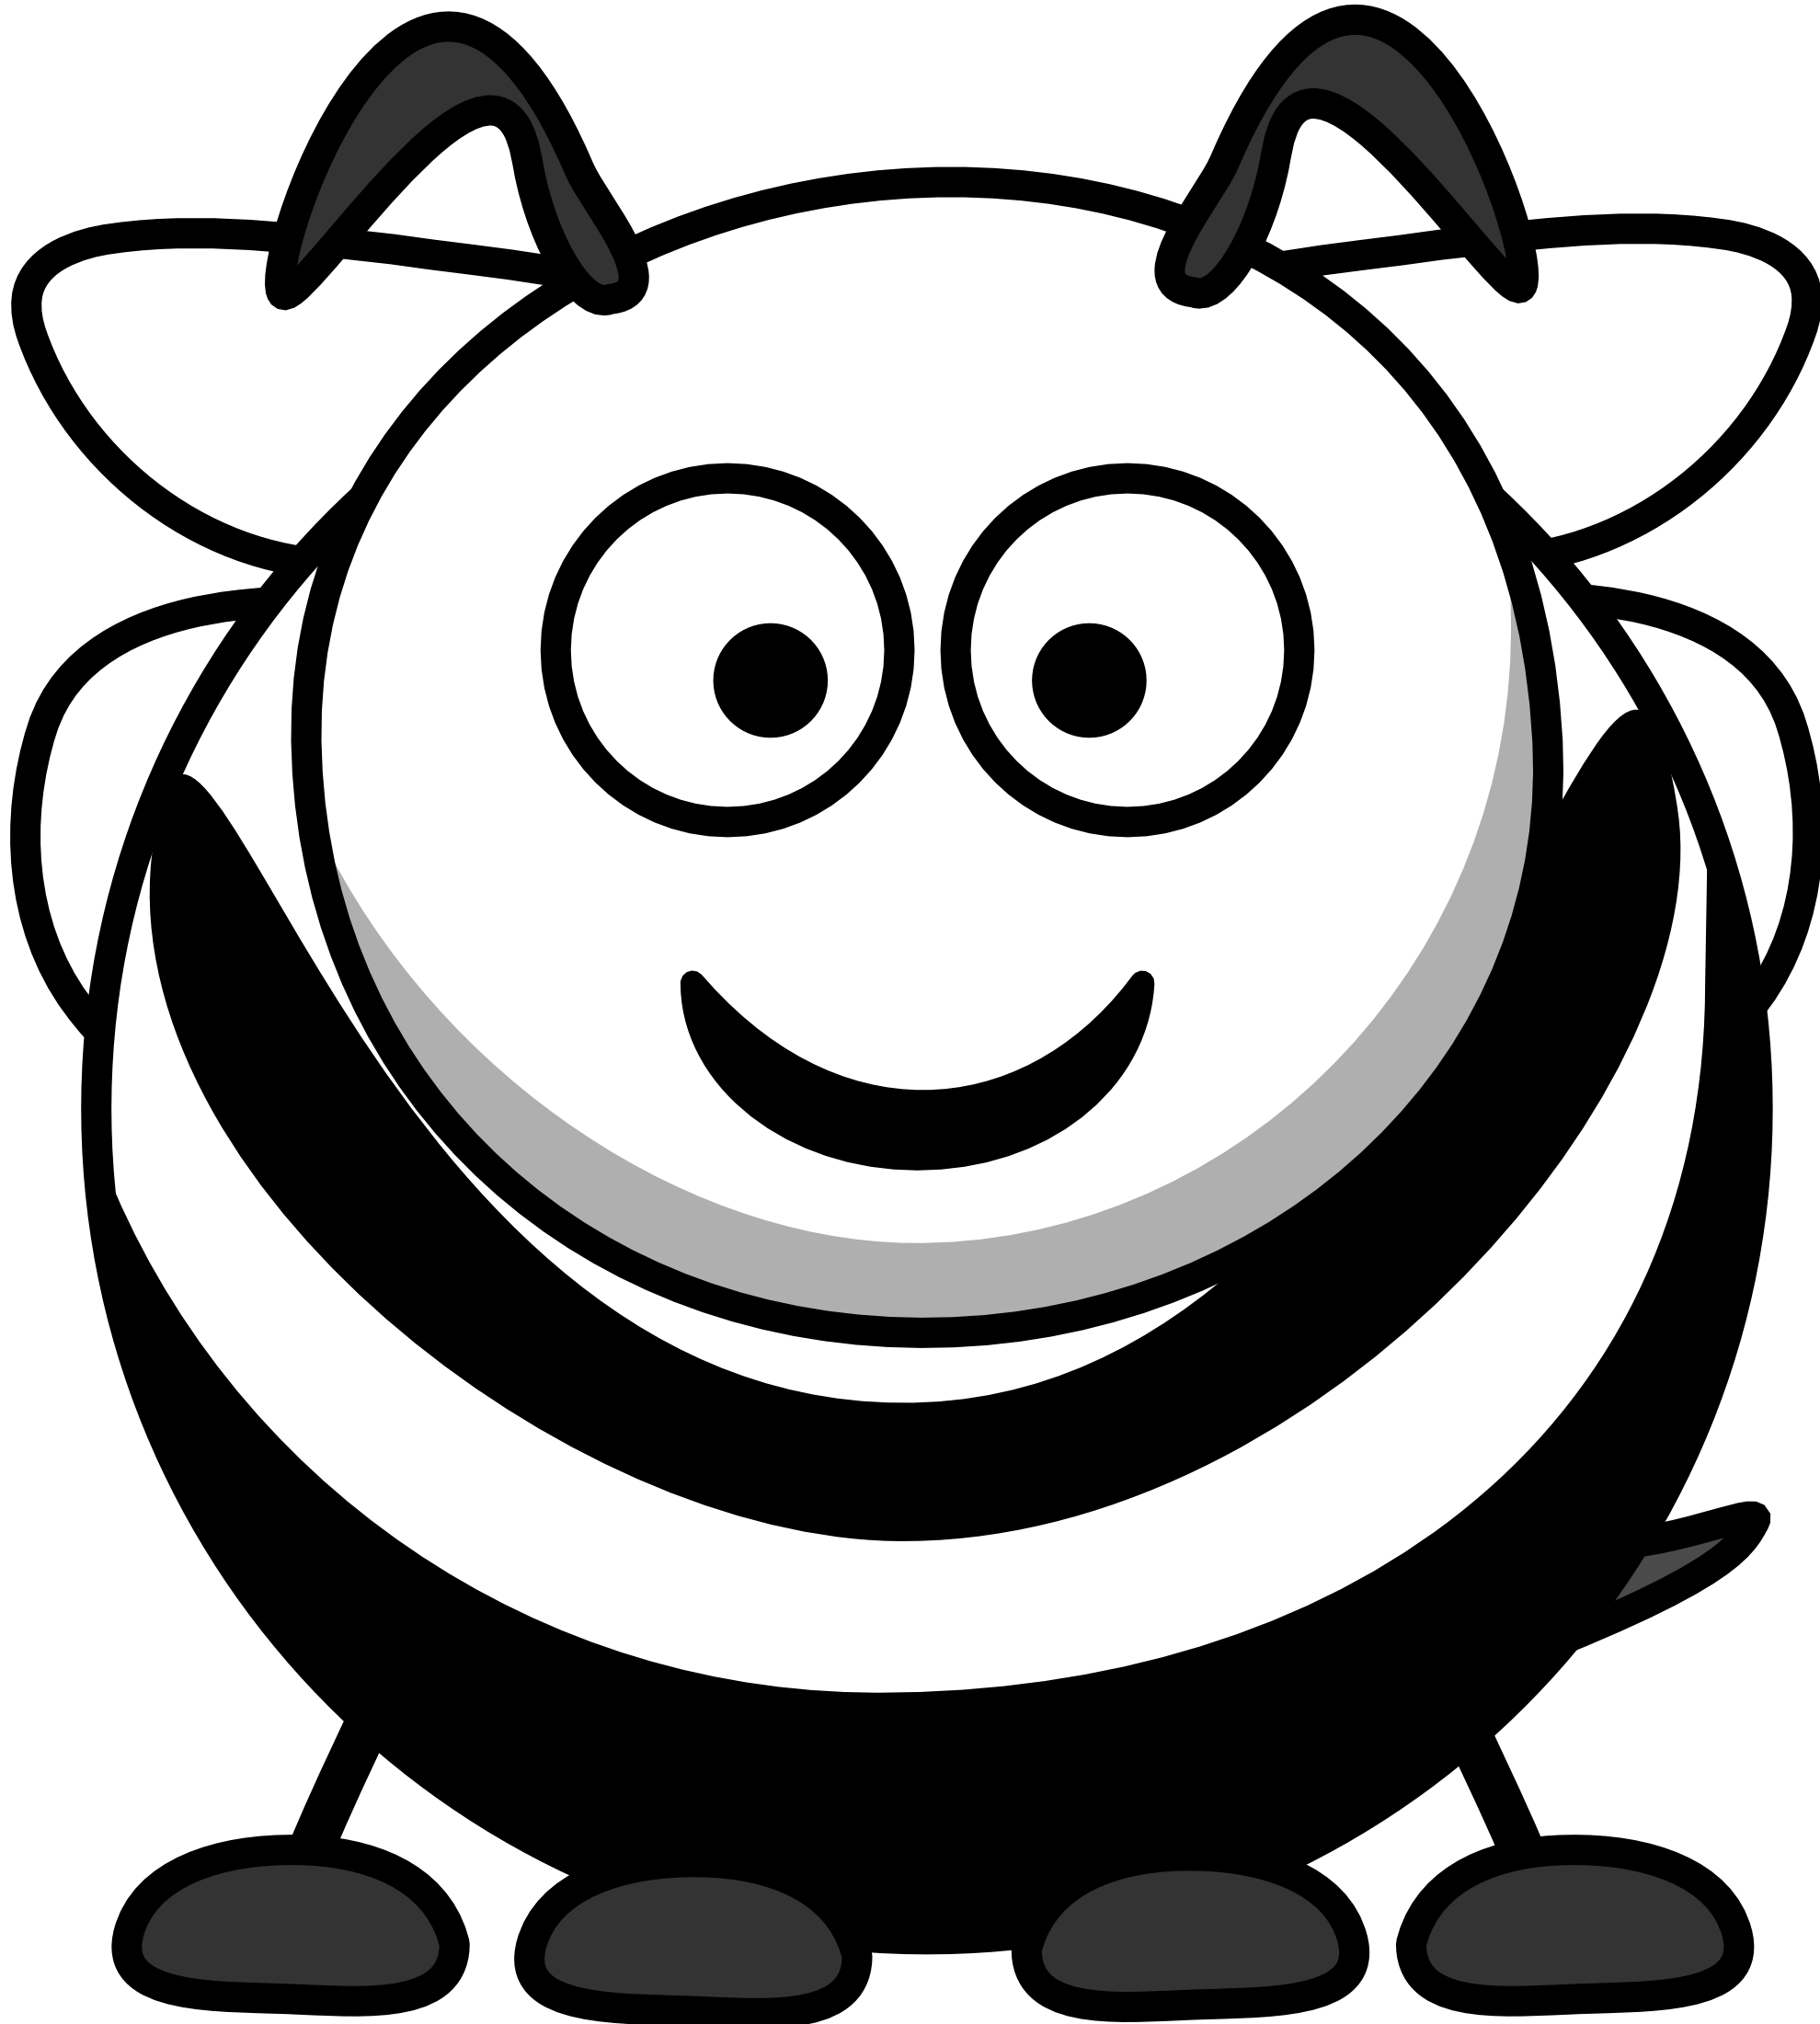 Bee Clipart Black And White | Clipart Panda - Free Clipart ...